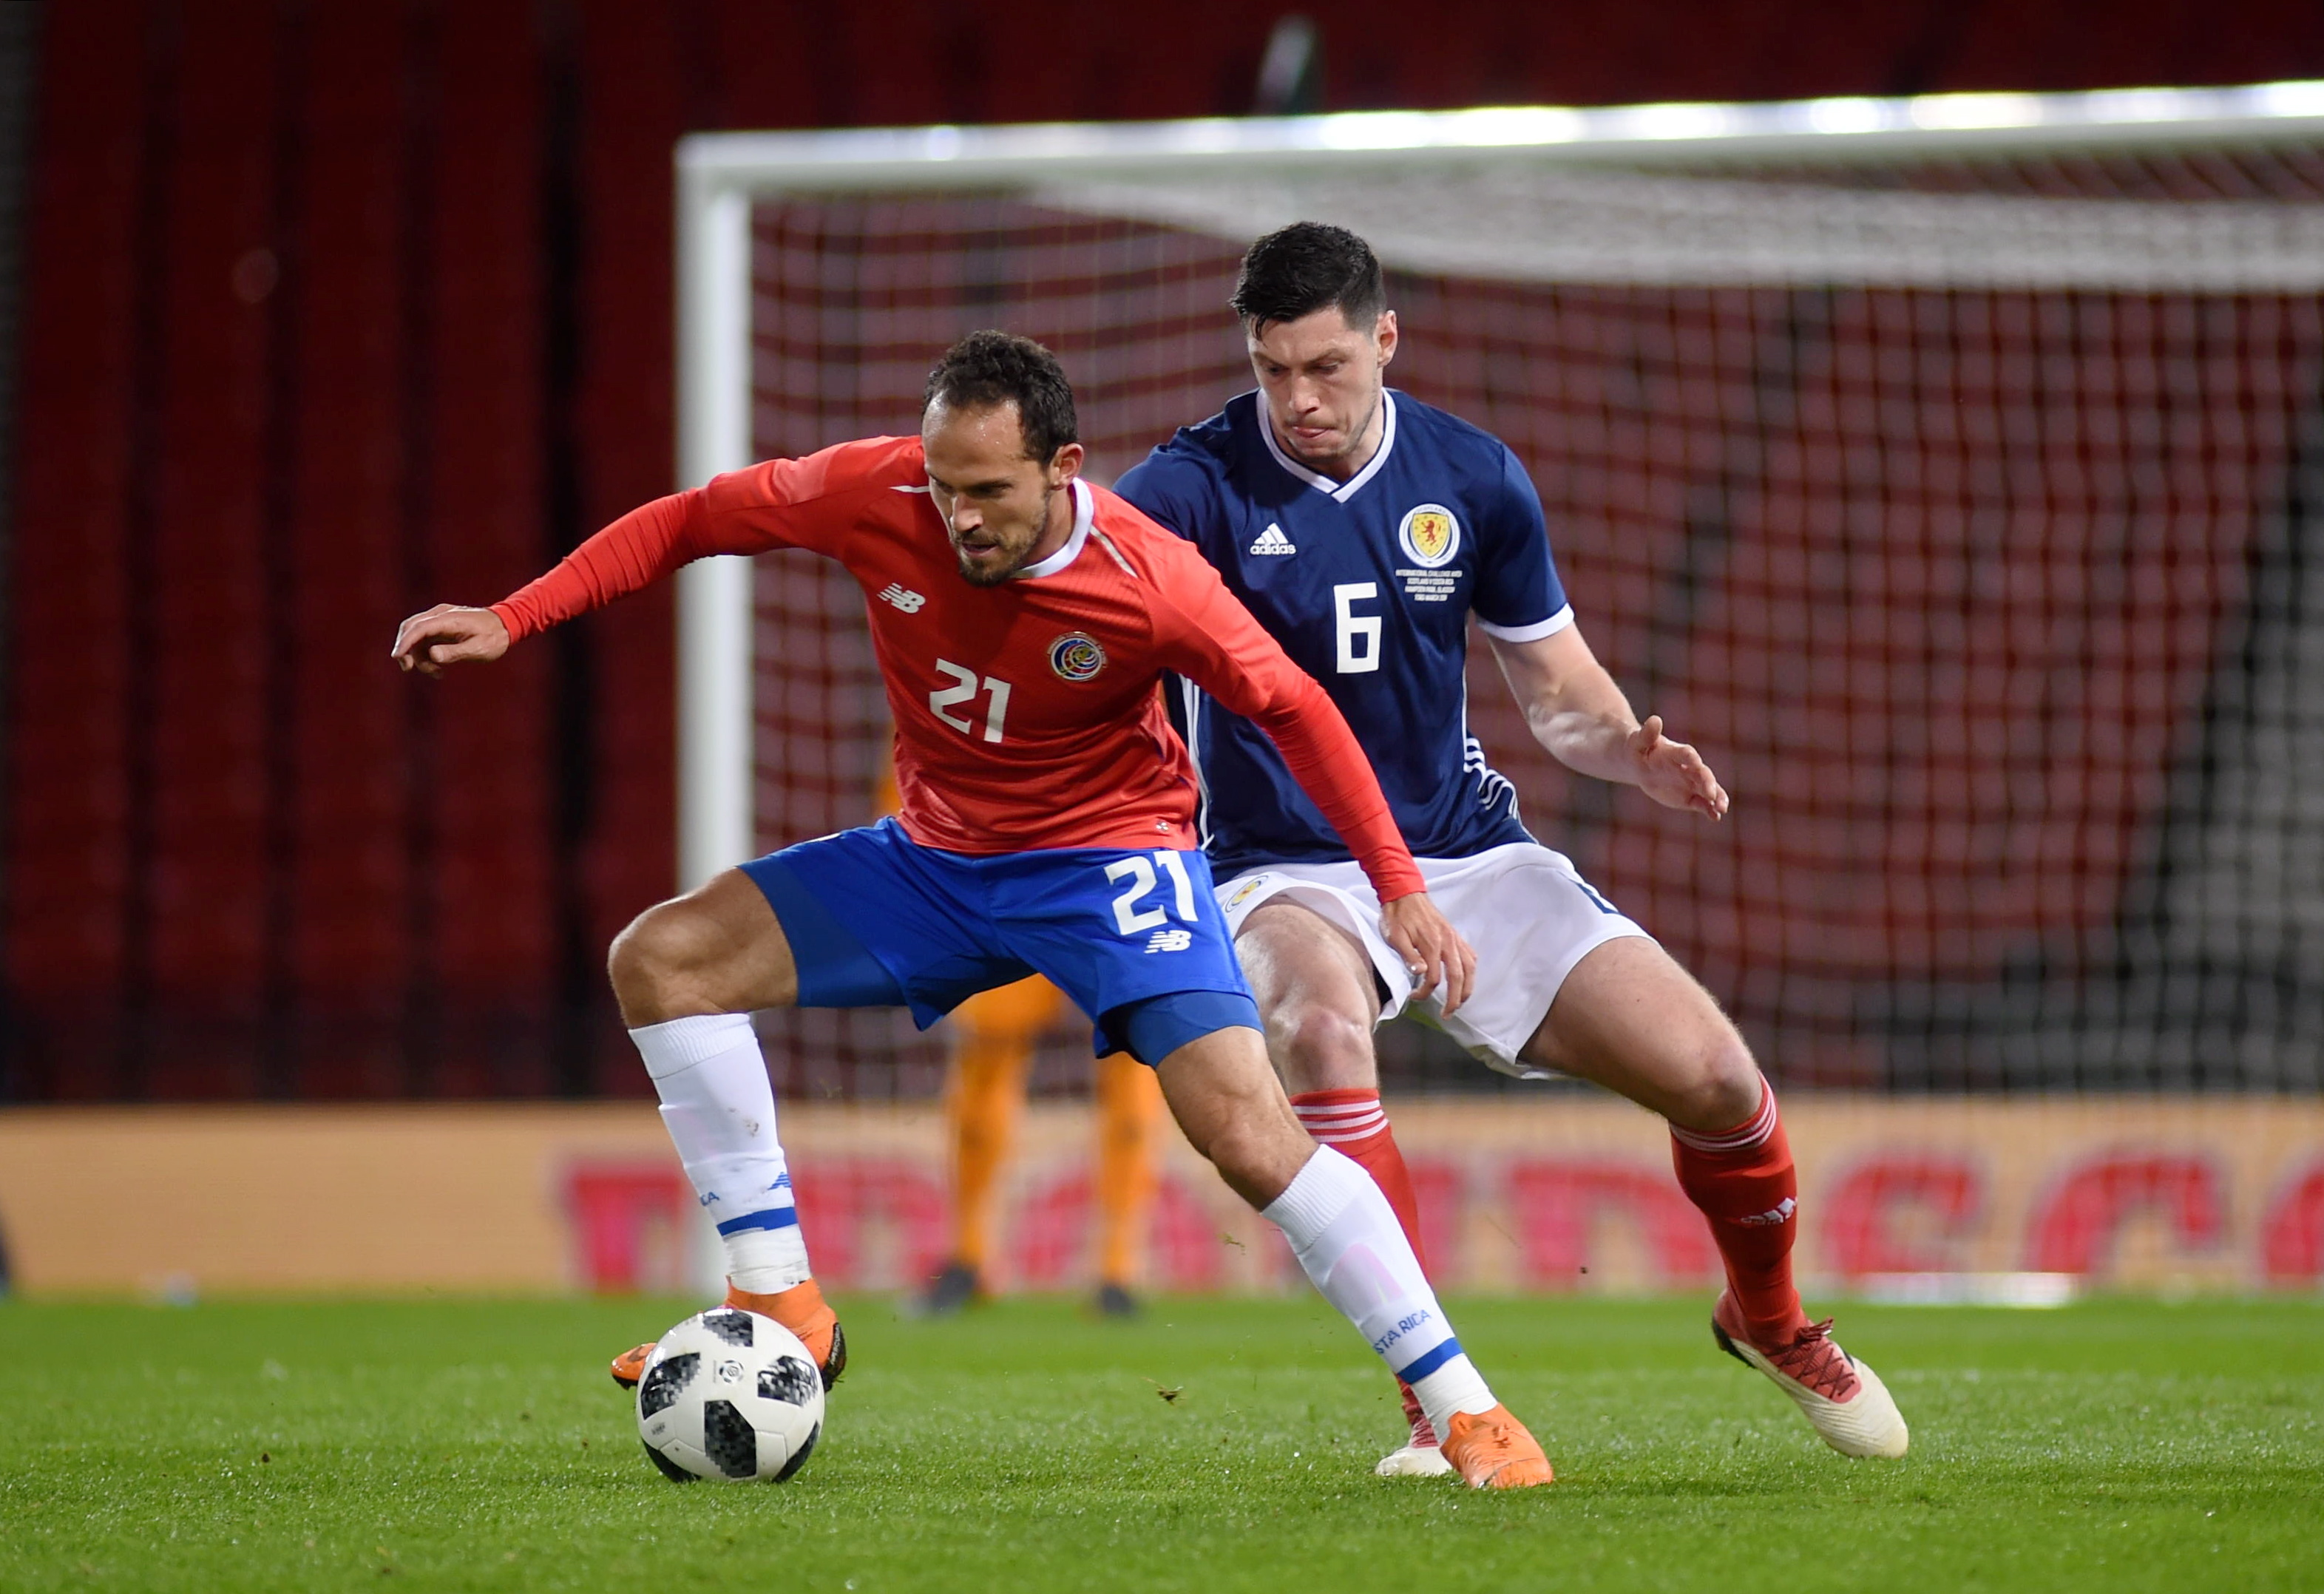 Costa Rica's Marcos Urena and Scotland's Scott McKenna. Picture by Darrell Benns